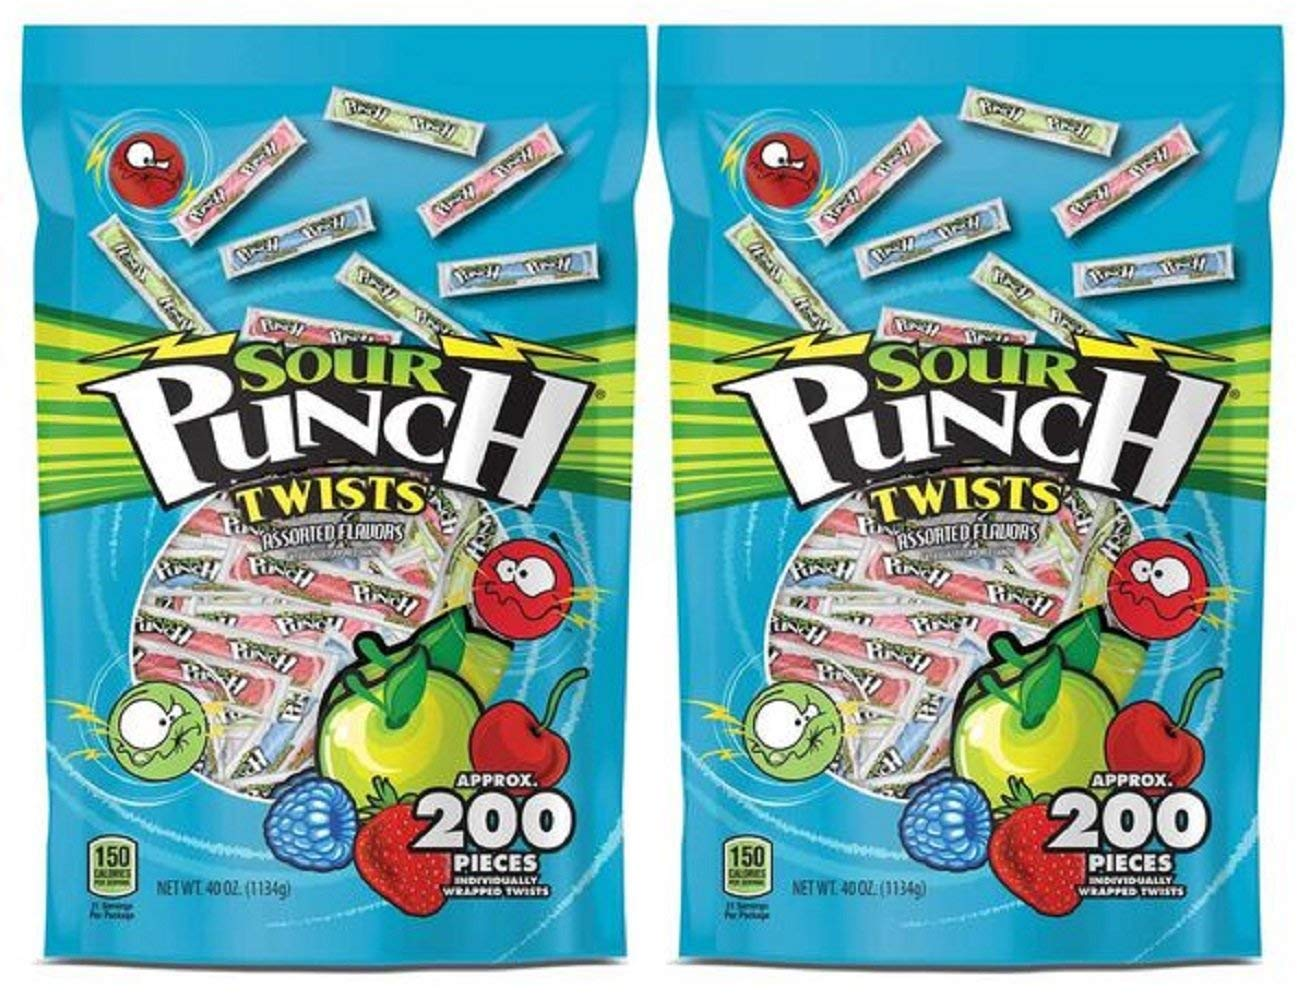 Sour Punch Twists, Assorted Flavors, 3'' Individually Wrapped Candy Pieces, Strawberry, Cherry, Blue Raspberry & Apple, 40 Ounce bag, 200 Count, Pack of 2 by Sour Punch